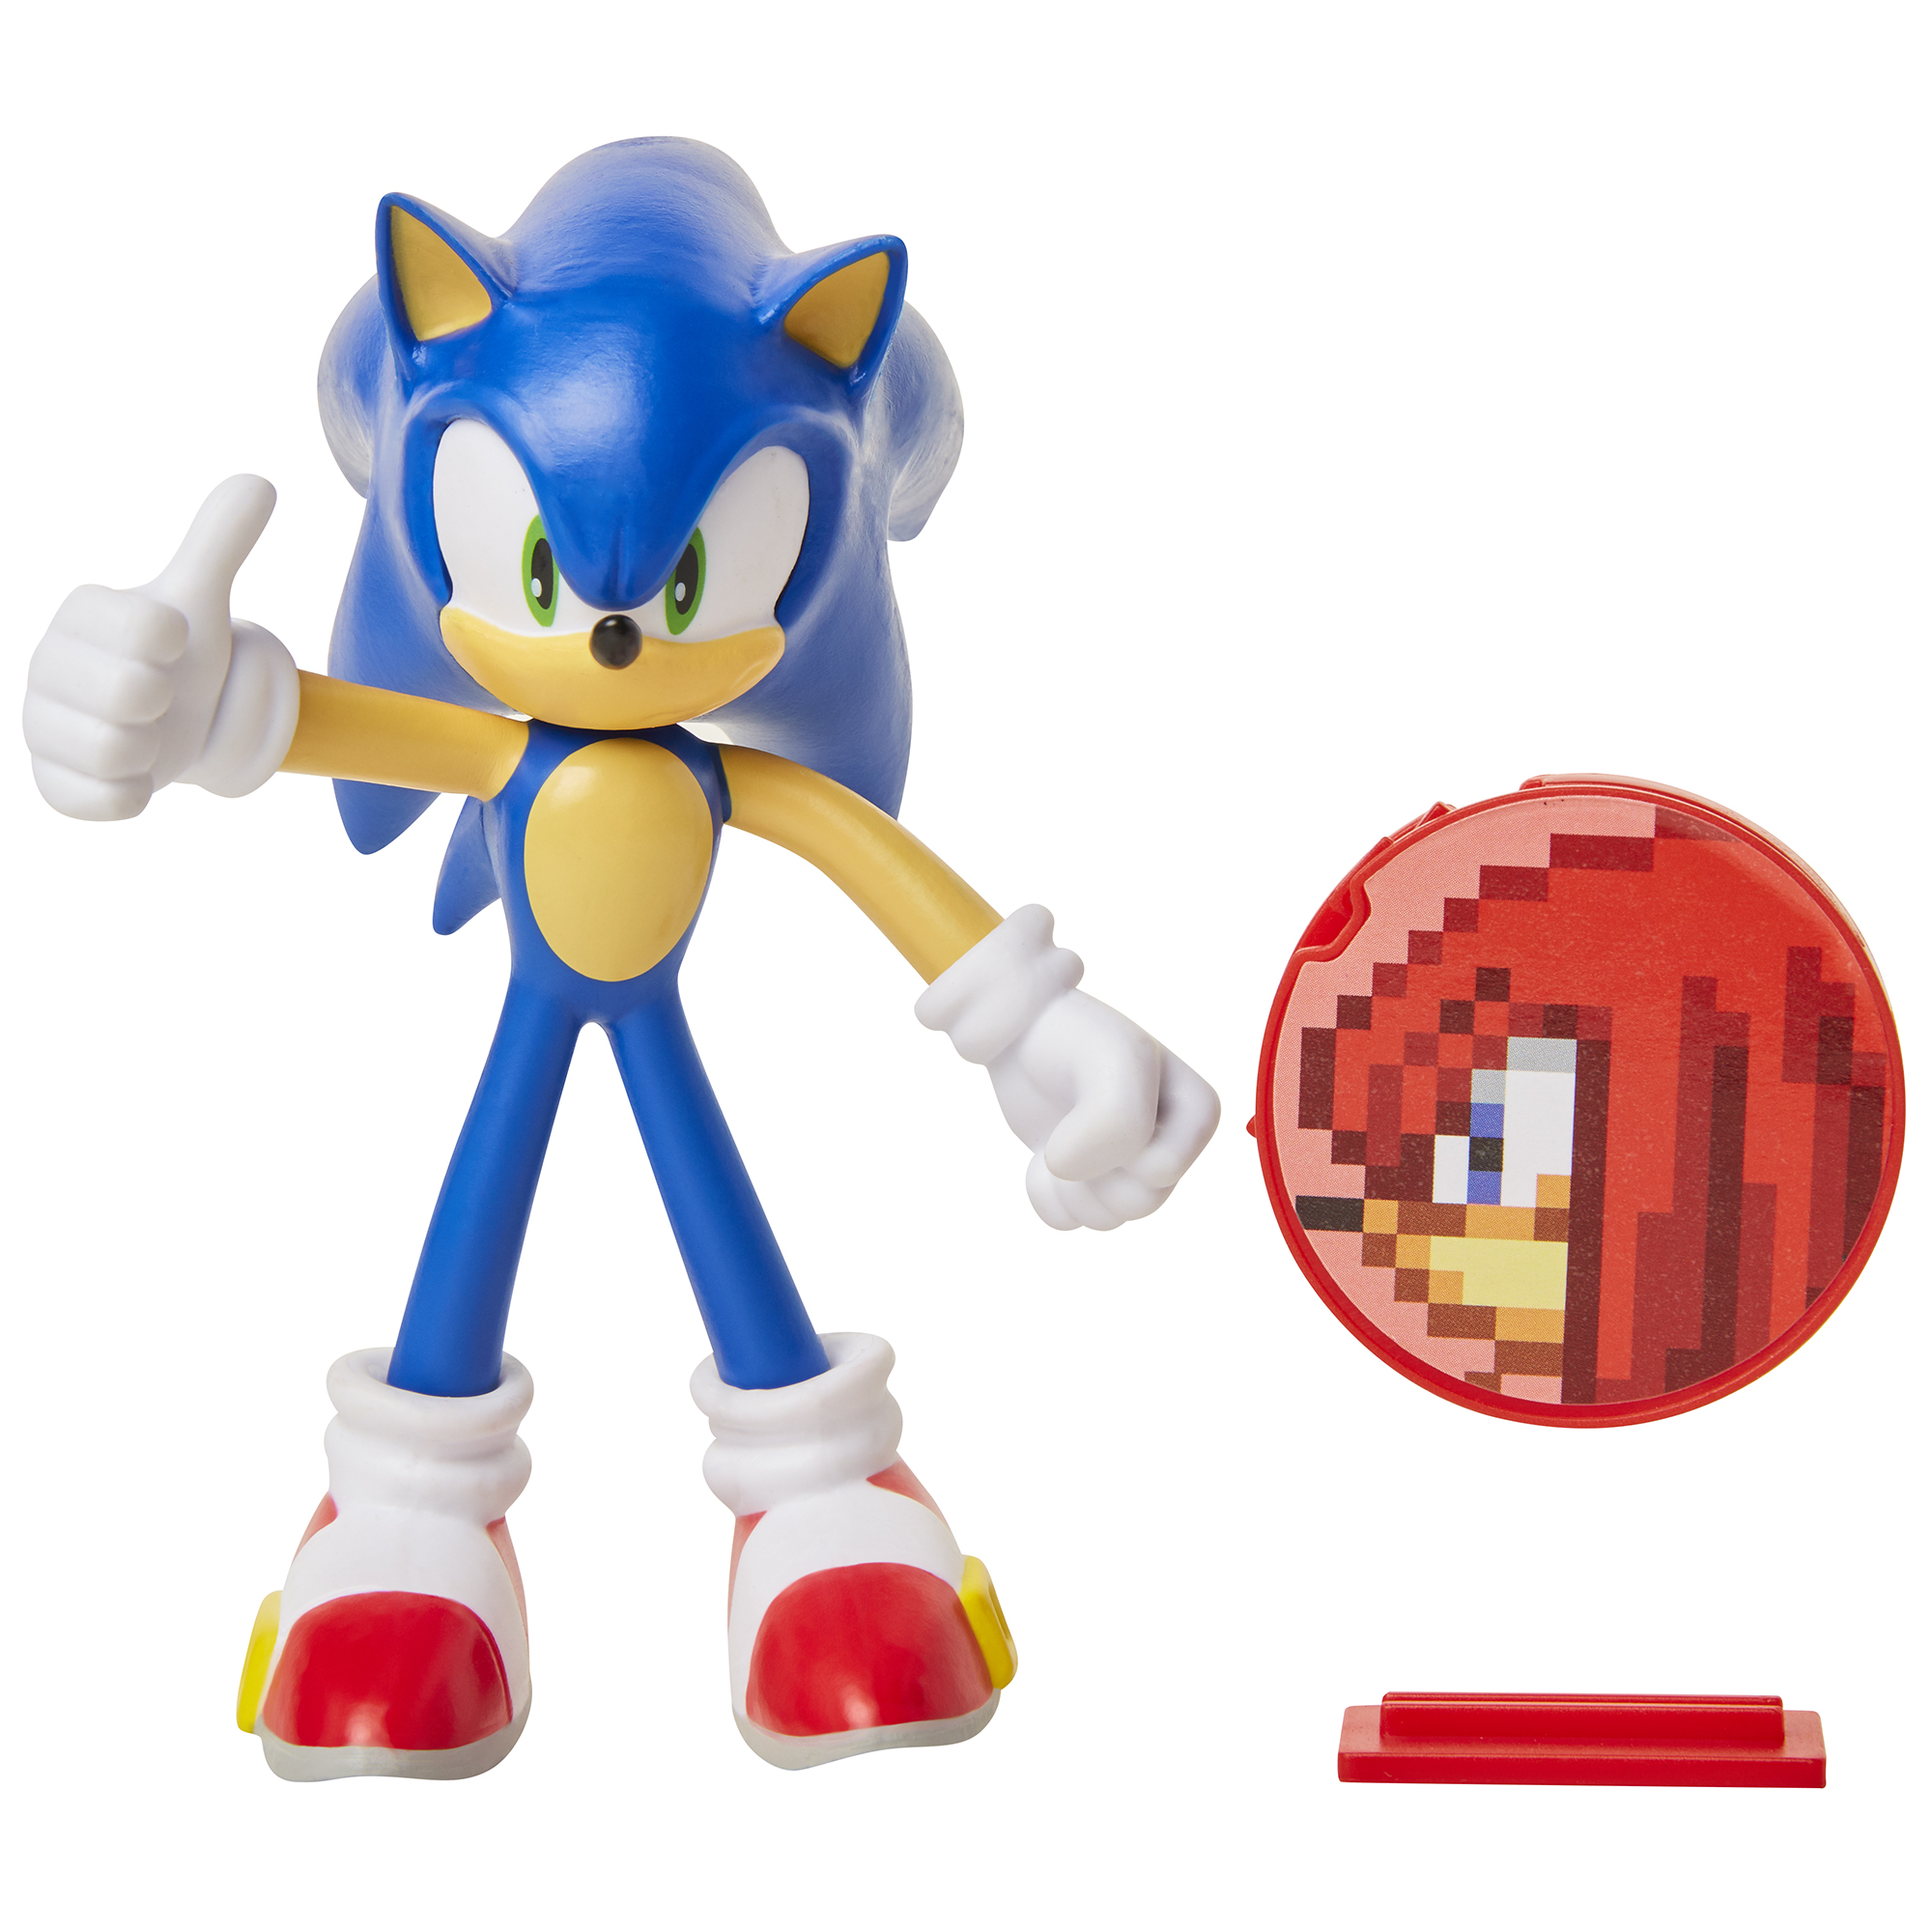 Sonic the Hedgehog - 4in Bendable Action Figures w/ accessory Wave 1 - Sonic